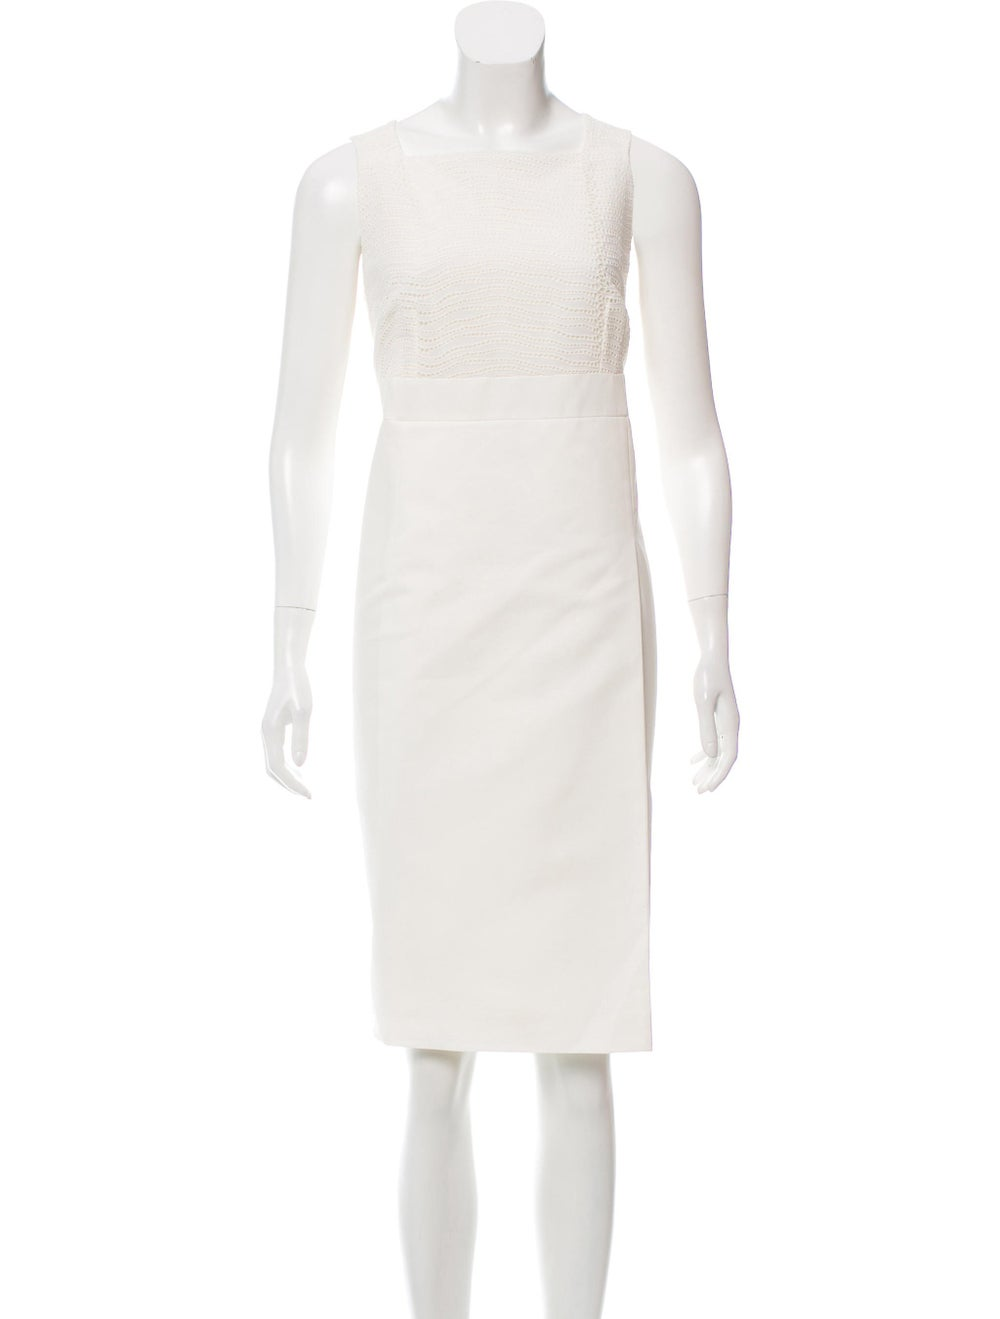 Akris Sleeveless Eyelet Dress - image 4